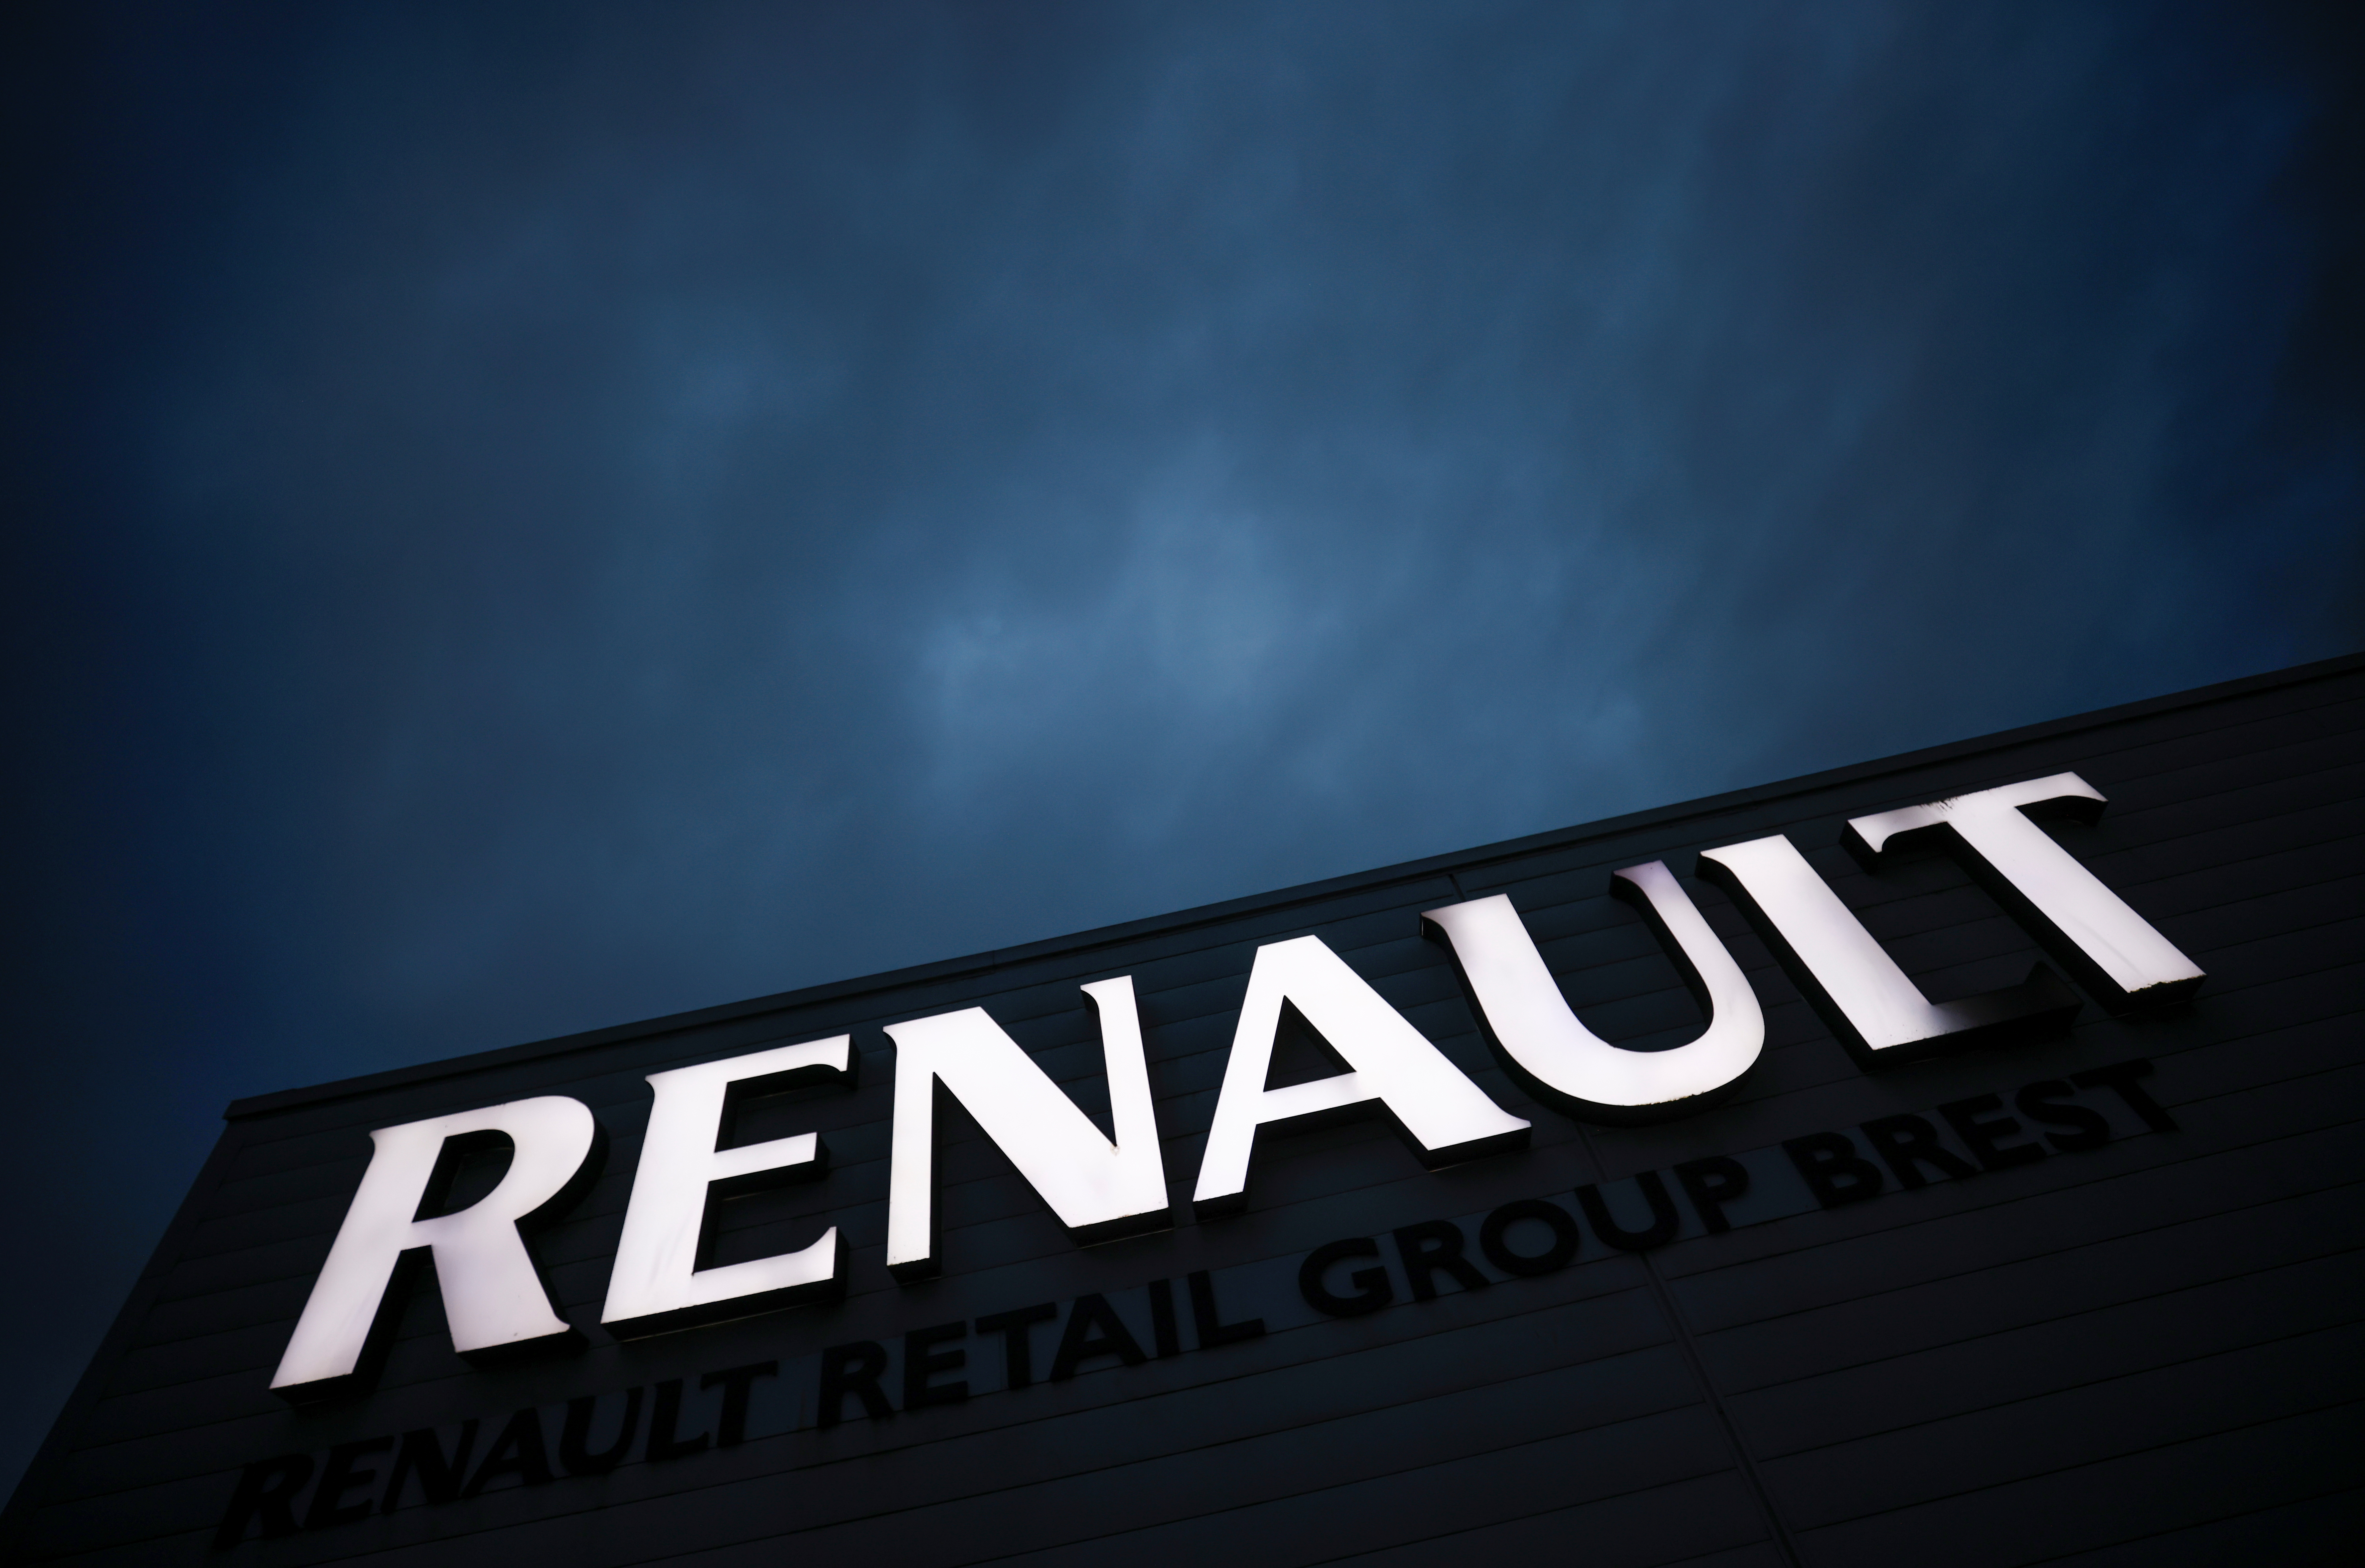 A logo of Renault carmaker is pictured at a dealership in Brest, France, February 19, 2021. REUTERS/Stephane Mahe